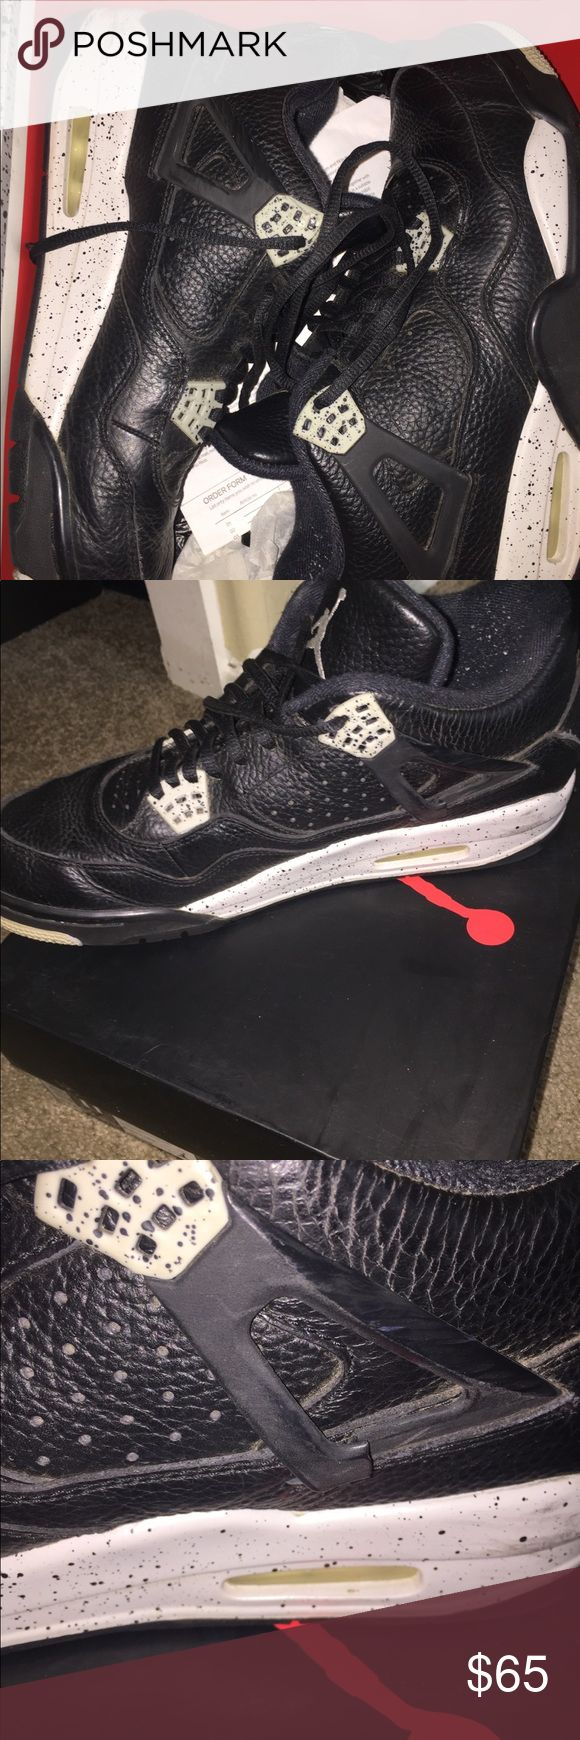 Air Jordan Oreo 4's Flaws include minor scuffs, slight tearing on one of the side details, and they're kinda dusty from not really wearing them for a while. Comes with original box. Jordan Shoes Sneakers